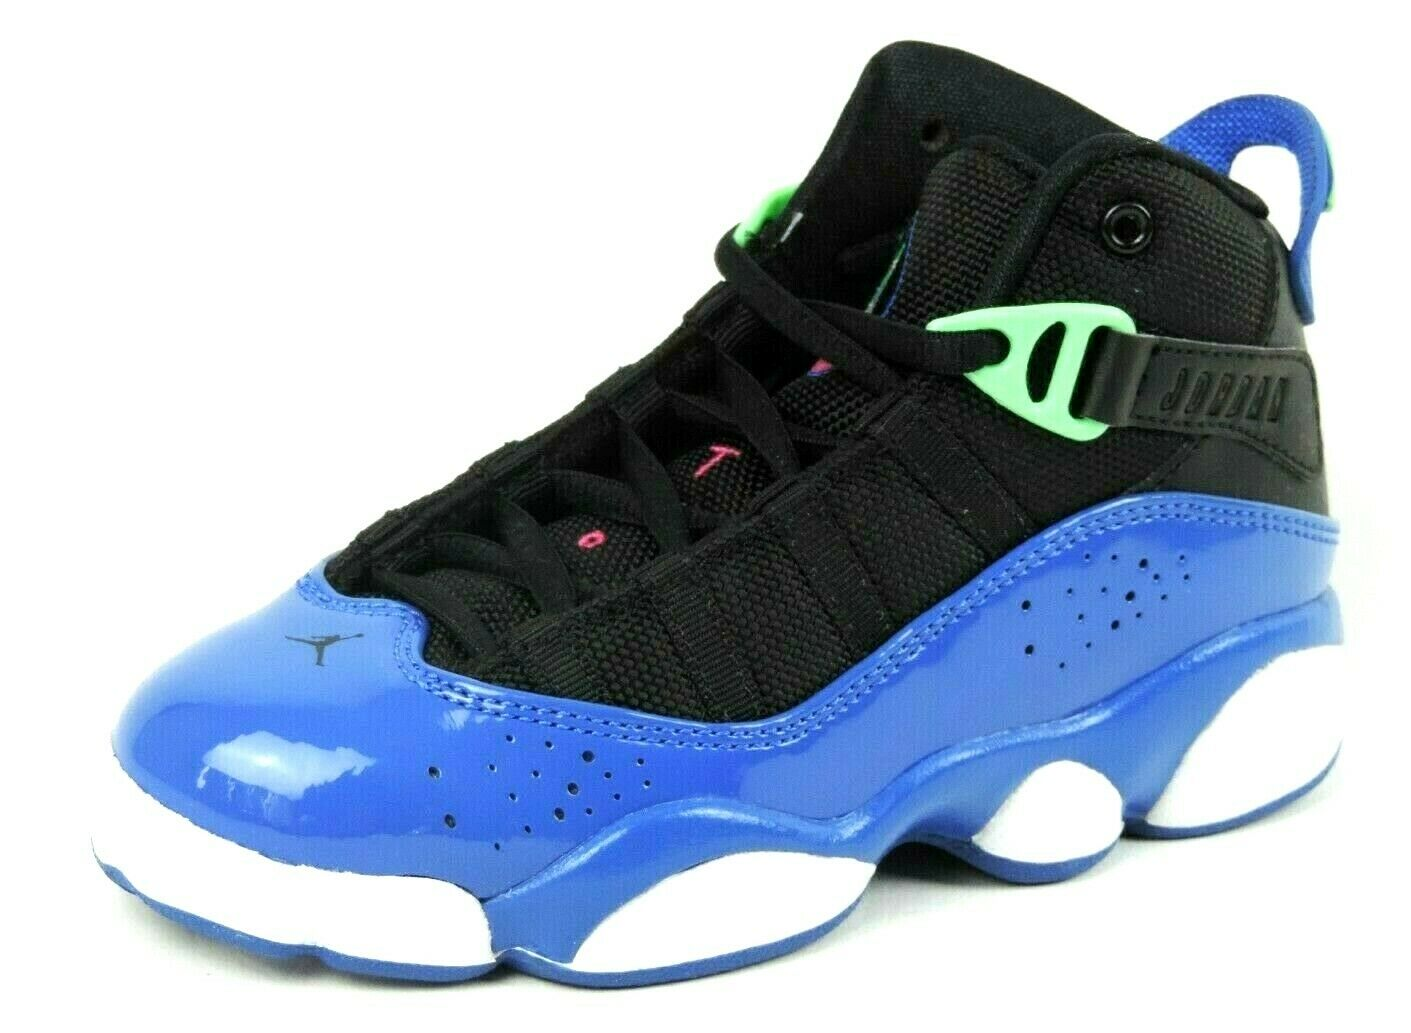 Nike Air Jordan 6 Rings 323431 039 Girls Shoes Basketball Retro Black Blue Vntg